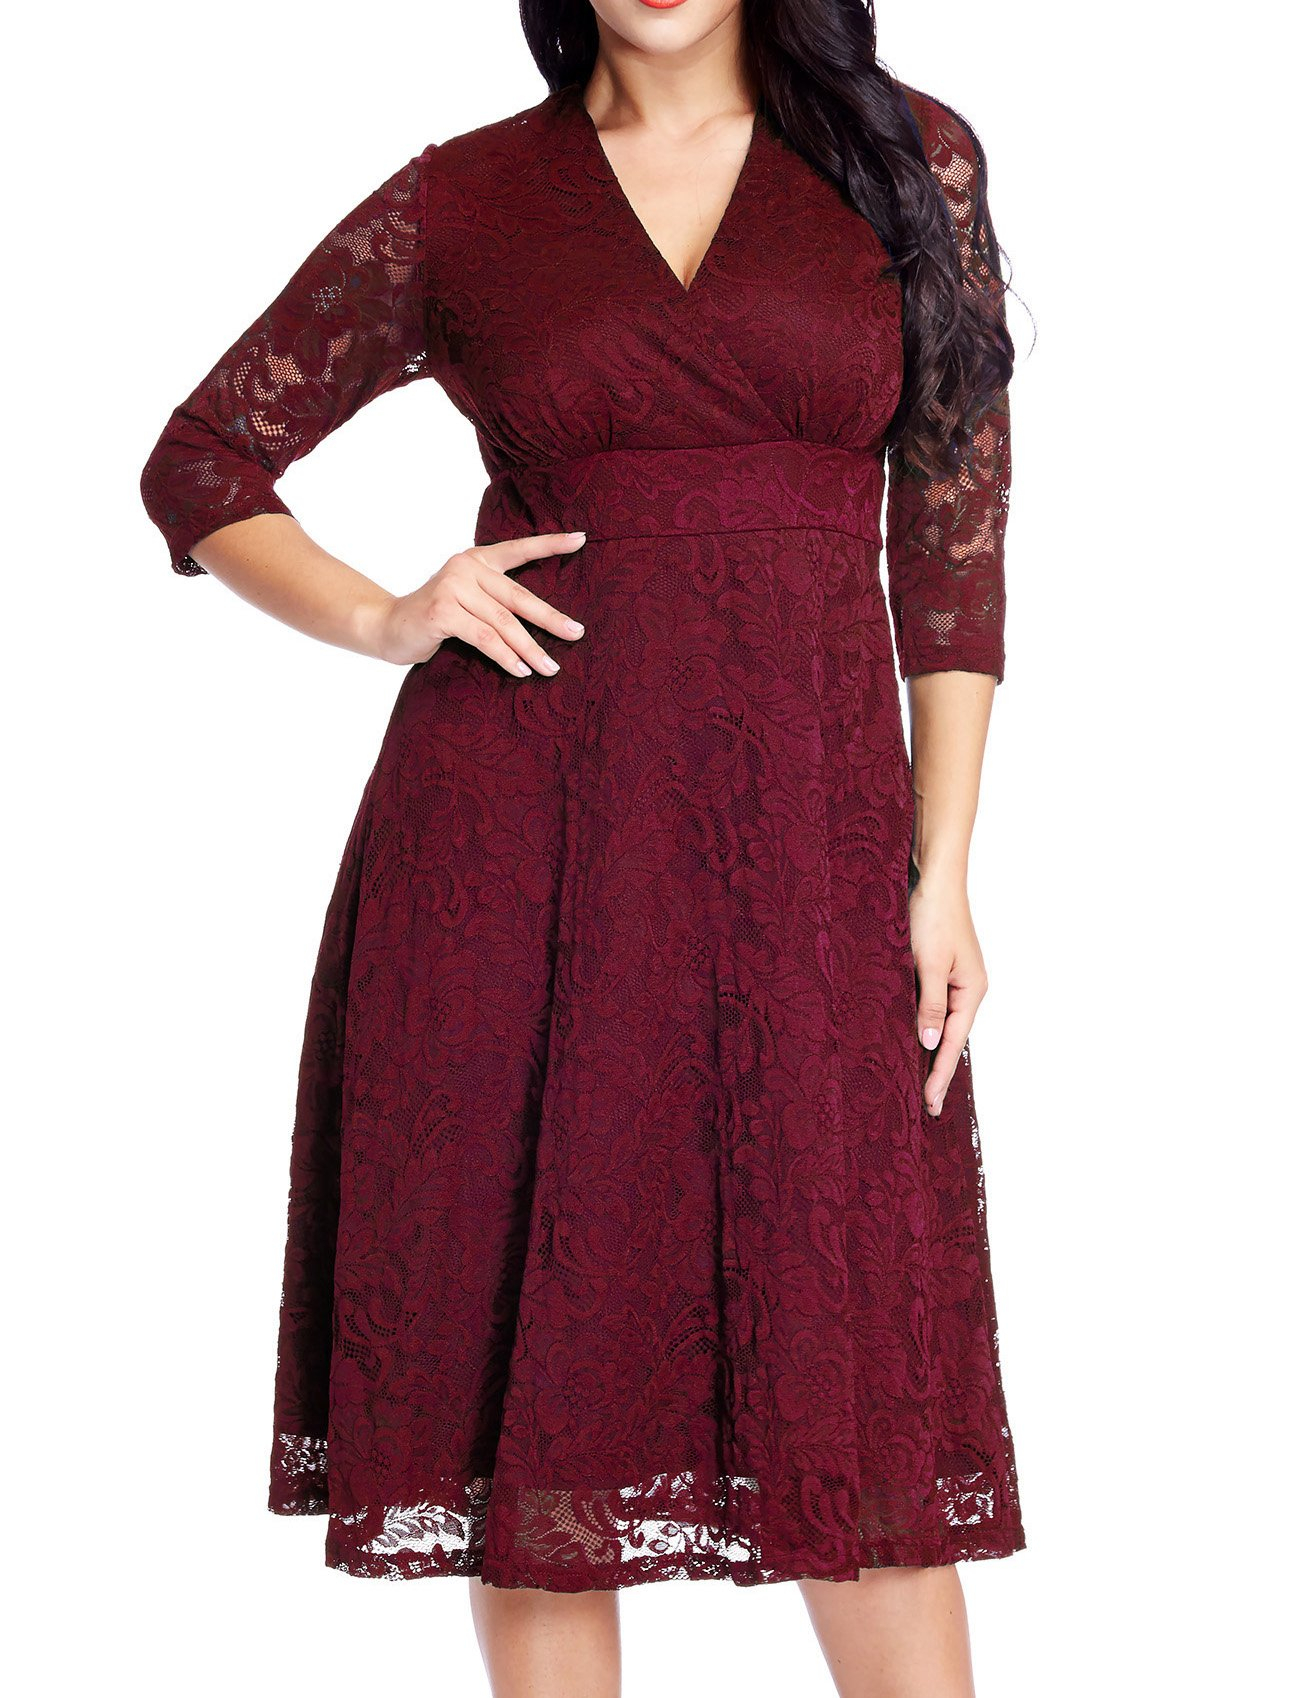 GRAPENT Women's Lace Plus Size Mother Of The Bride Skater Dress Bridal Wedding Party Maroon 26W